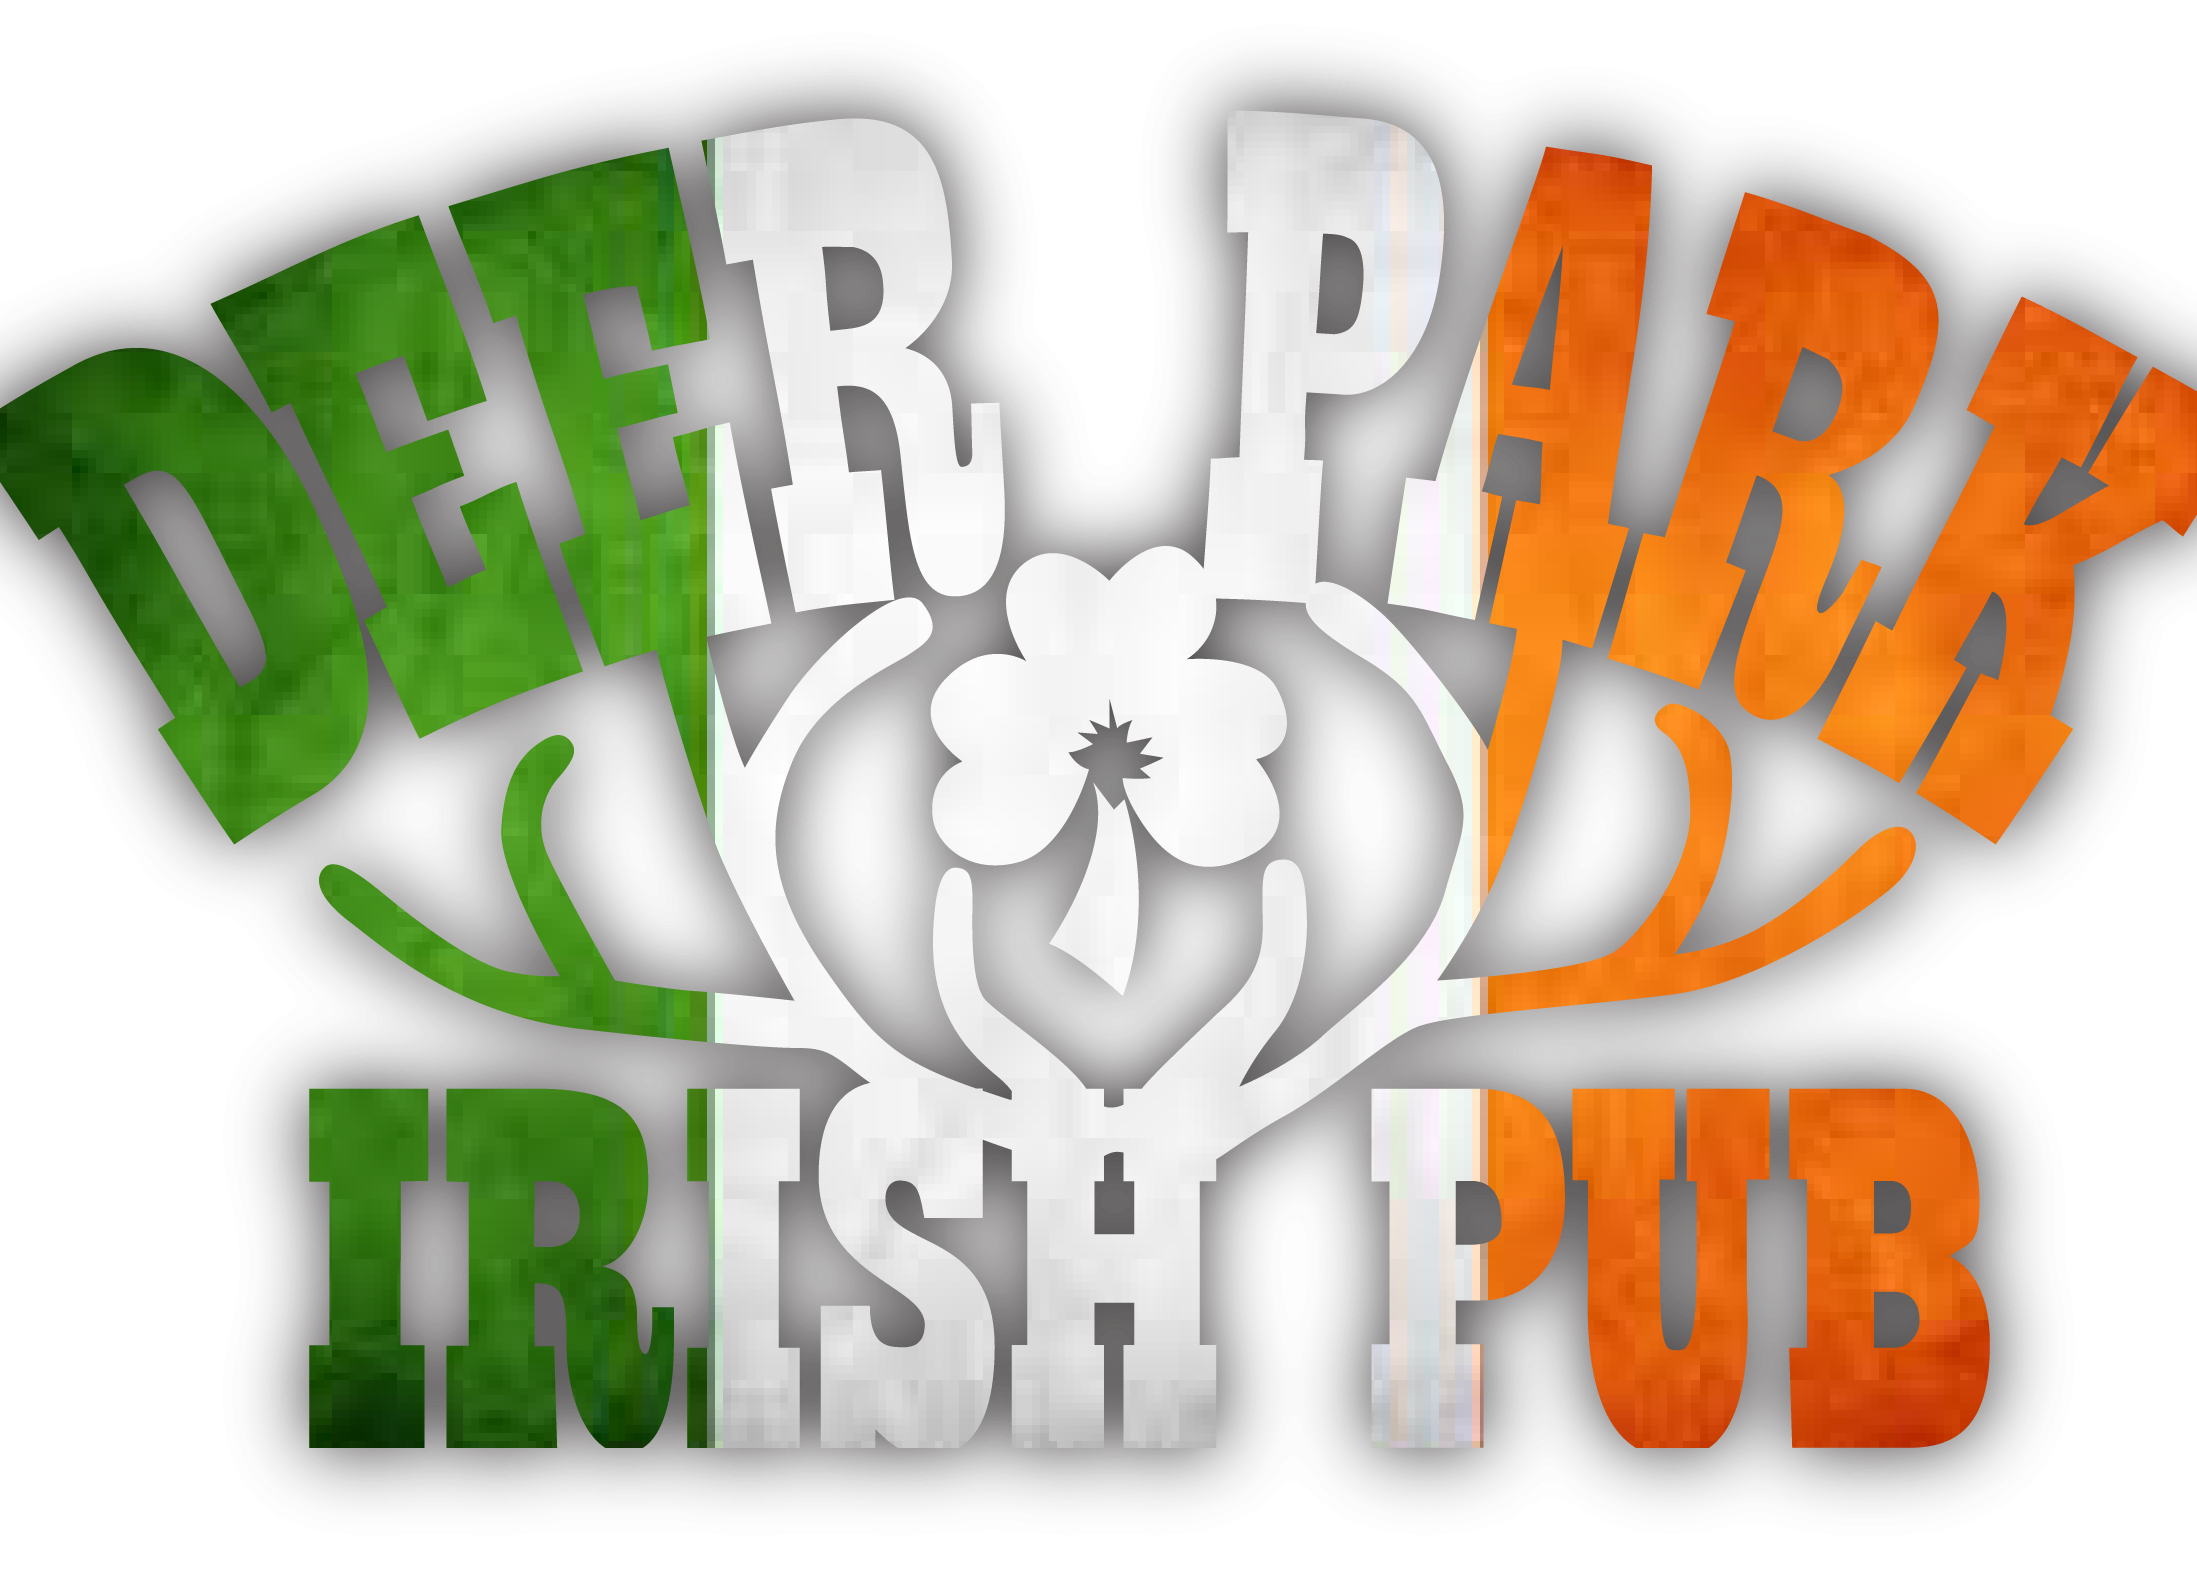 Deer Park Irish Pub